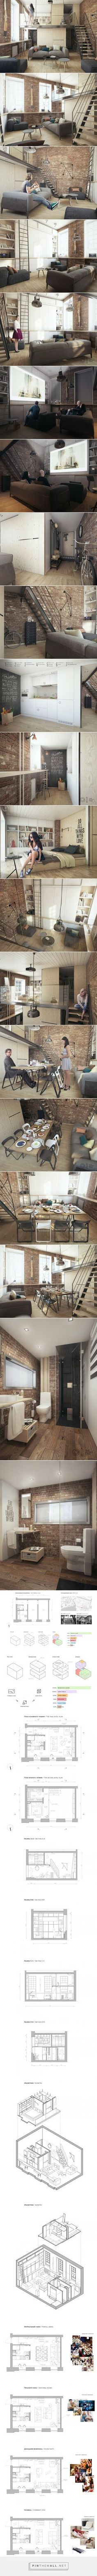 A Super Small Apartment That Adapts To Its Owner's Needs... - a grouped images…